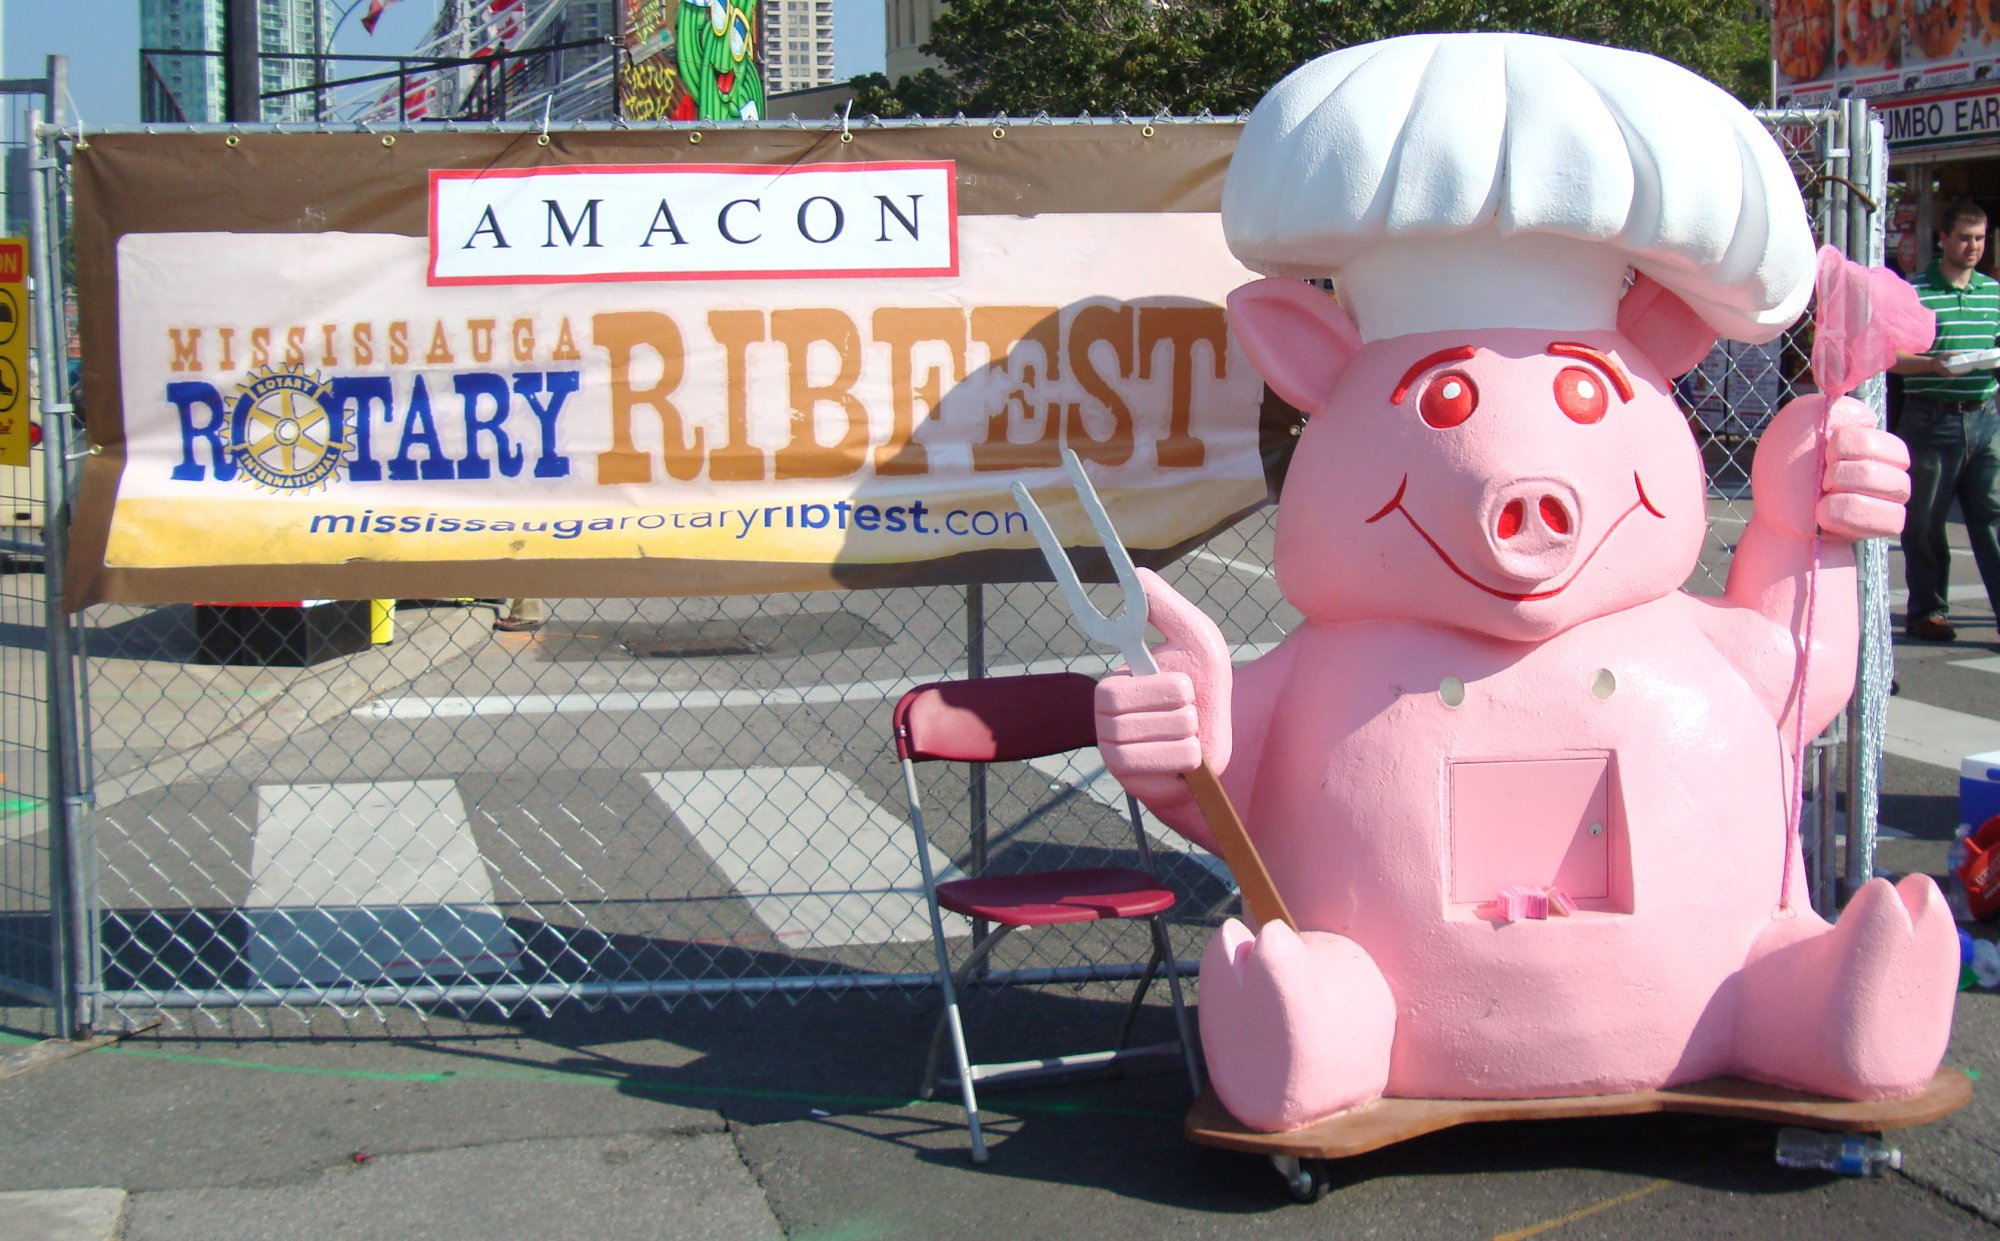 Rotary Ribfest Pig photo by I Lee 16Jul10